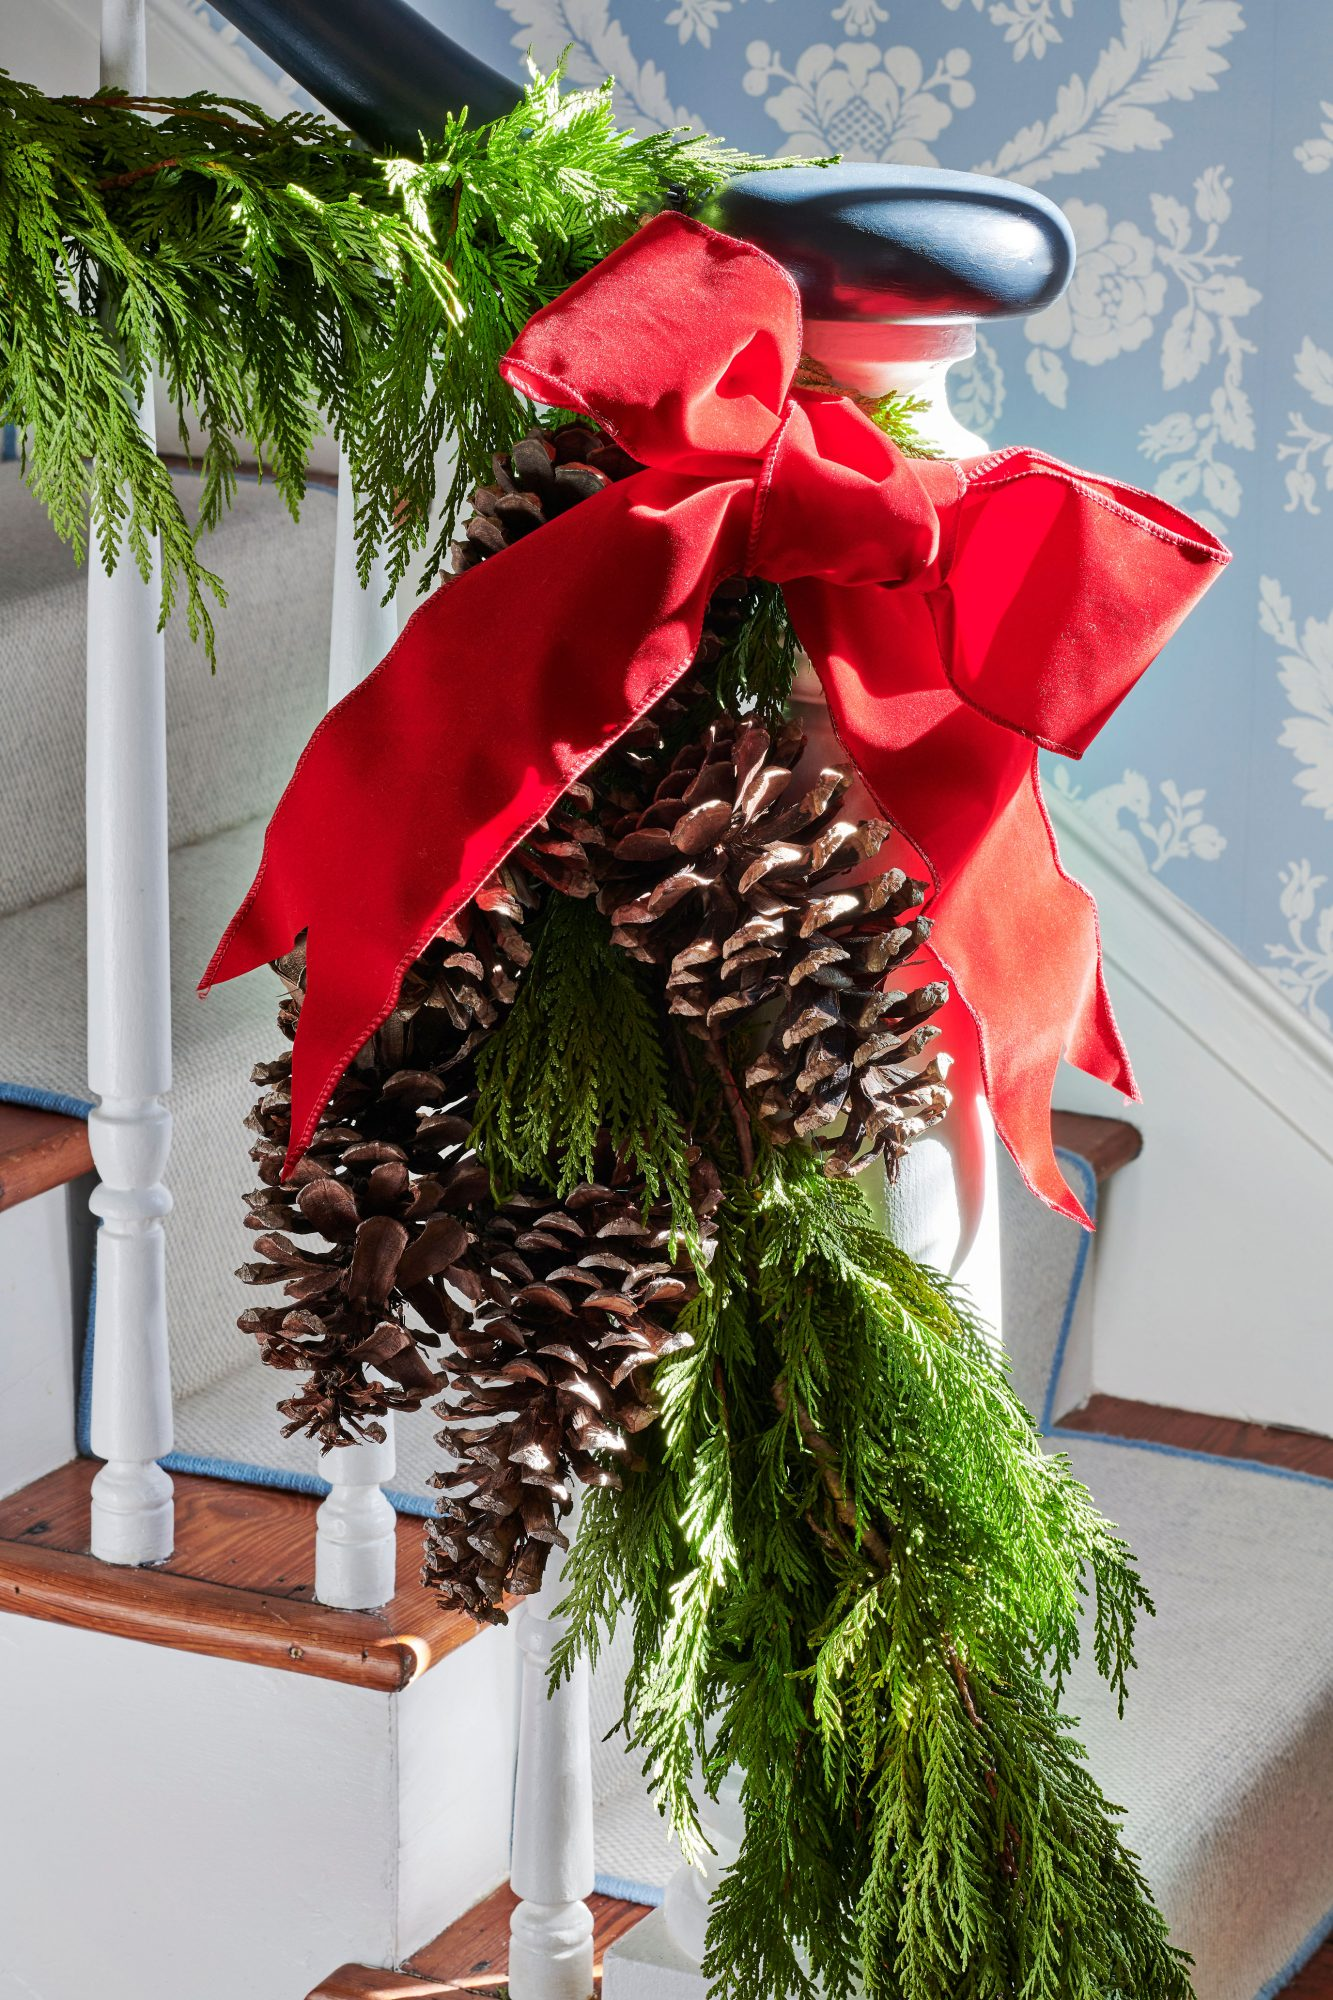 Banister greenery swag with red bow and pinecones